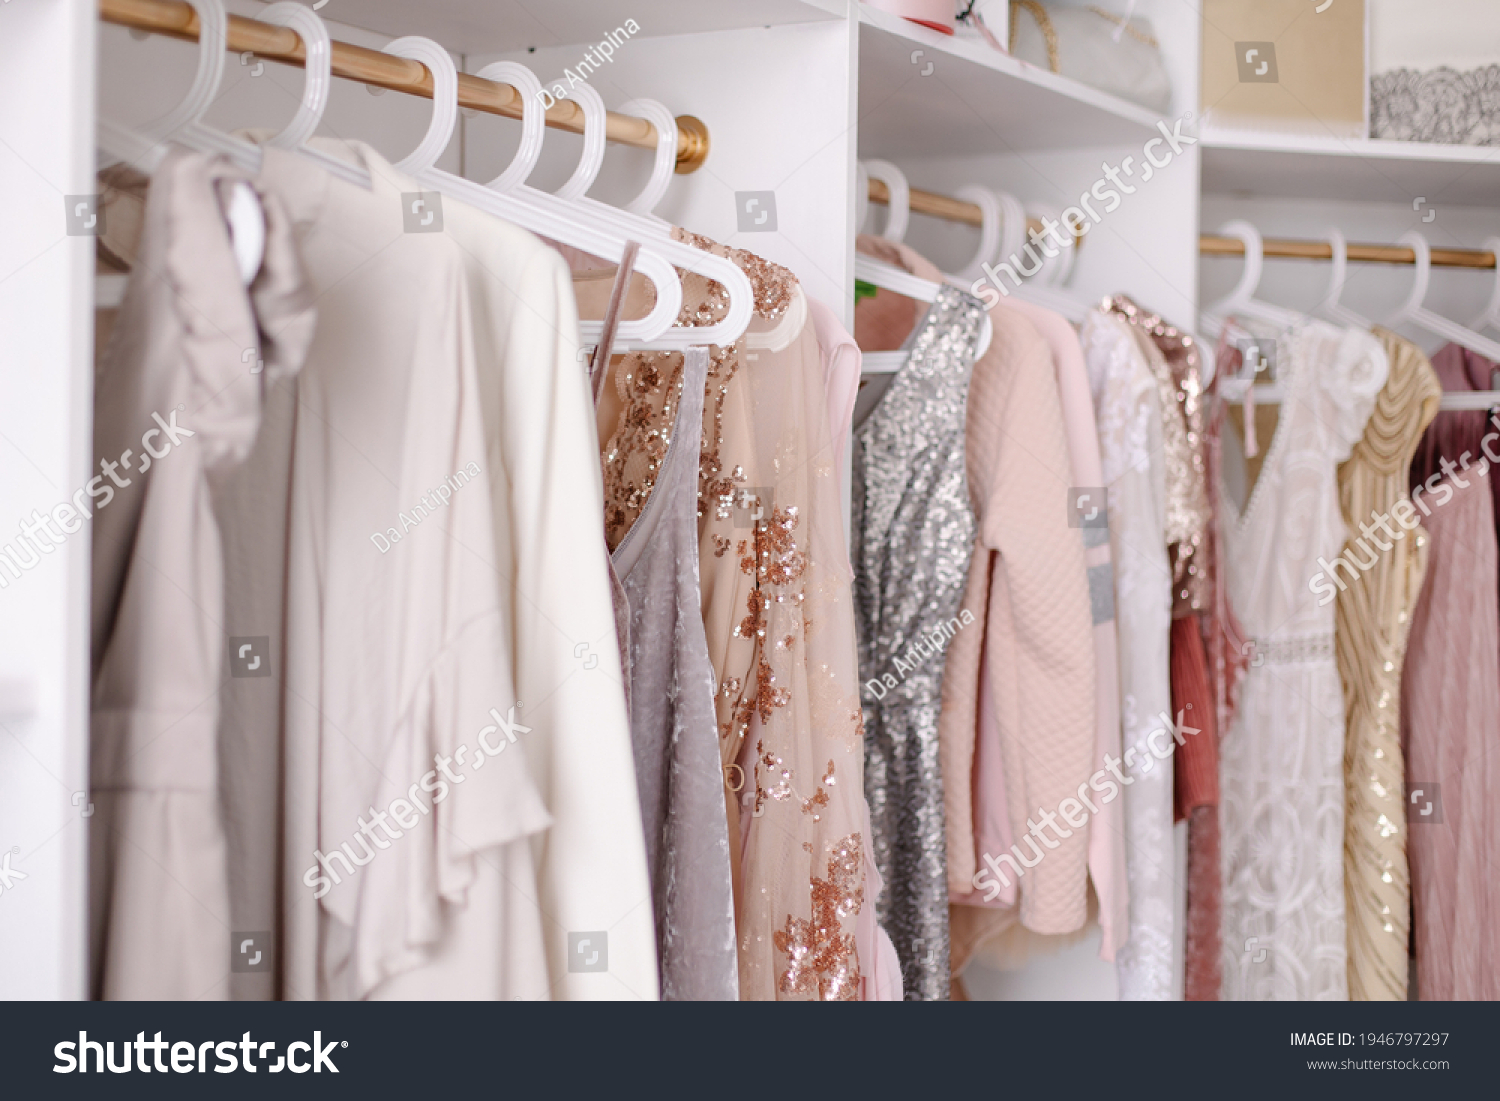 Beautiful female wardrobe. A lot of party dresses hanging on hangers in closet. Vintage clothing rental concept. Women's space. Large selection of various clothes. Small boutique showroom fashion shop #1946797297